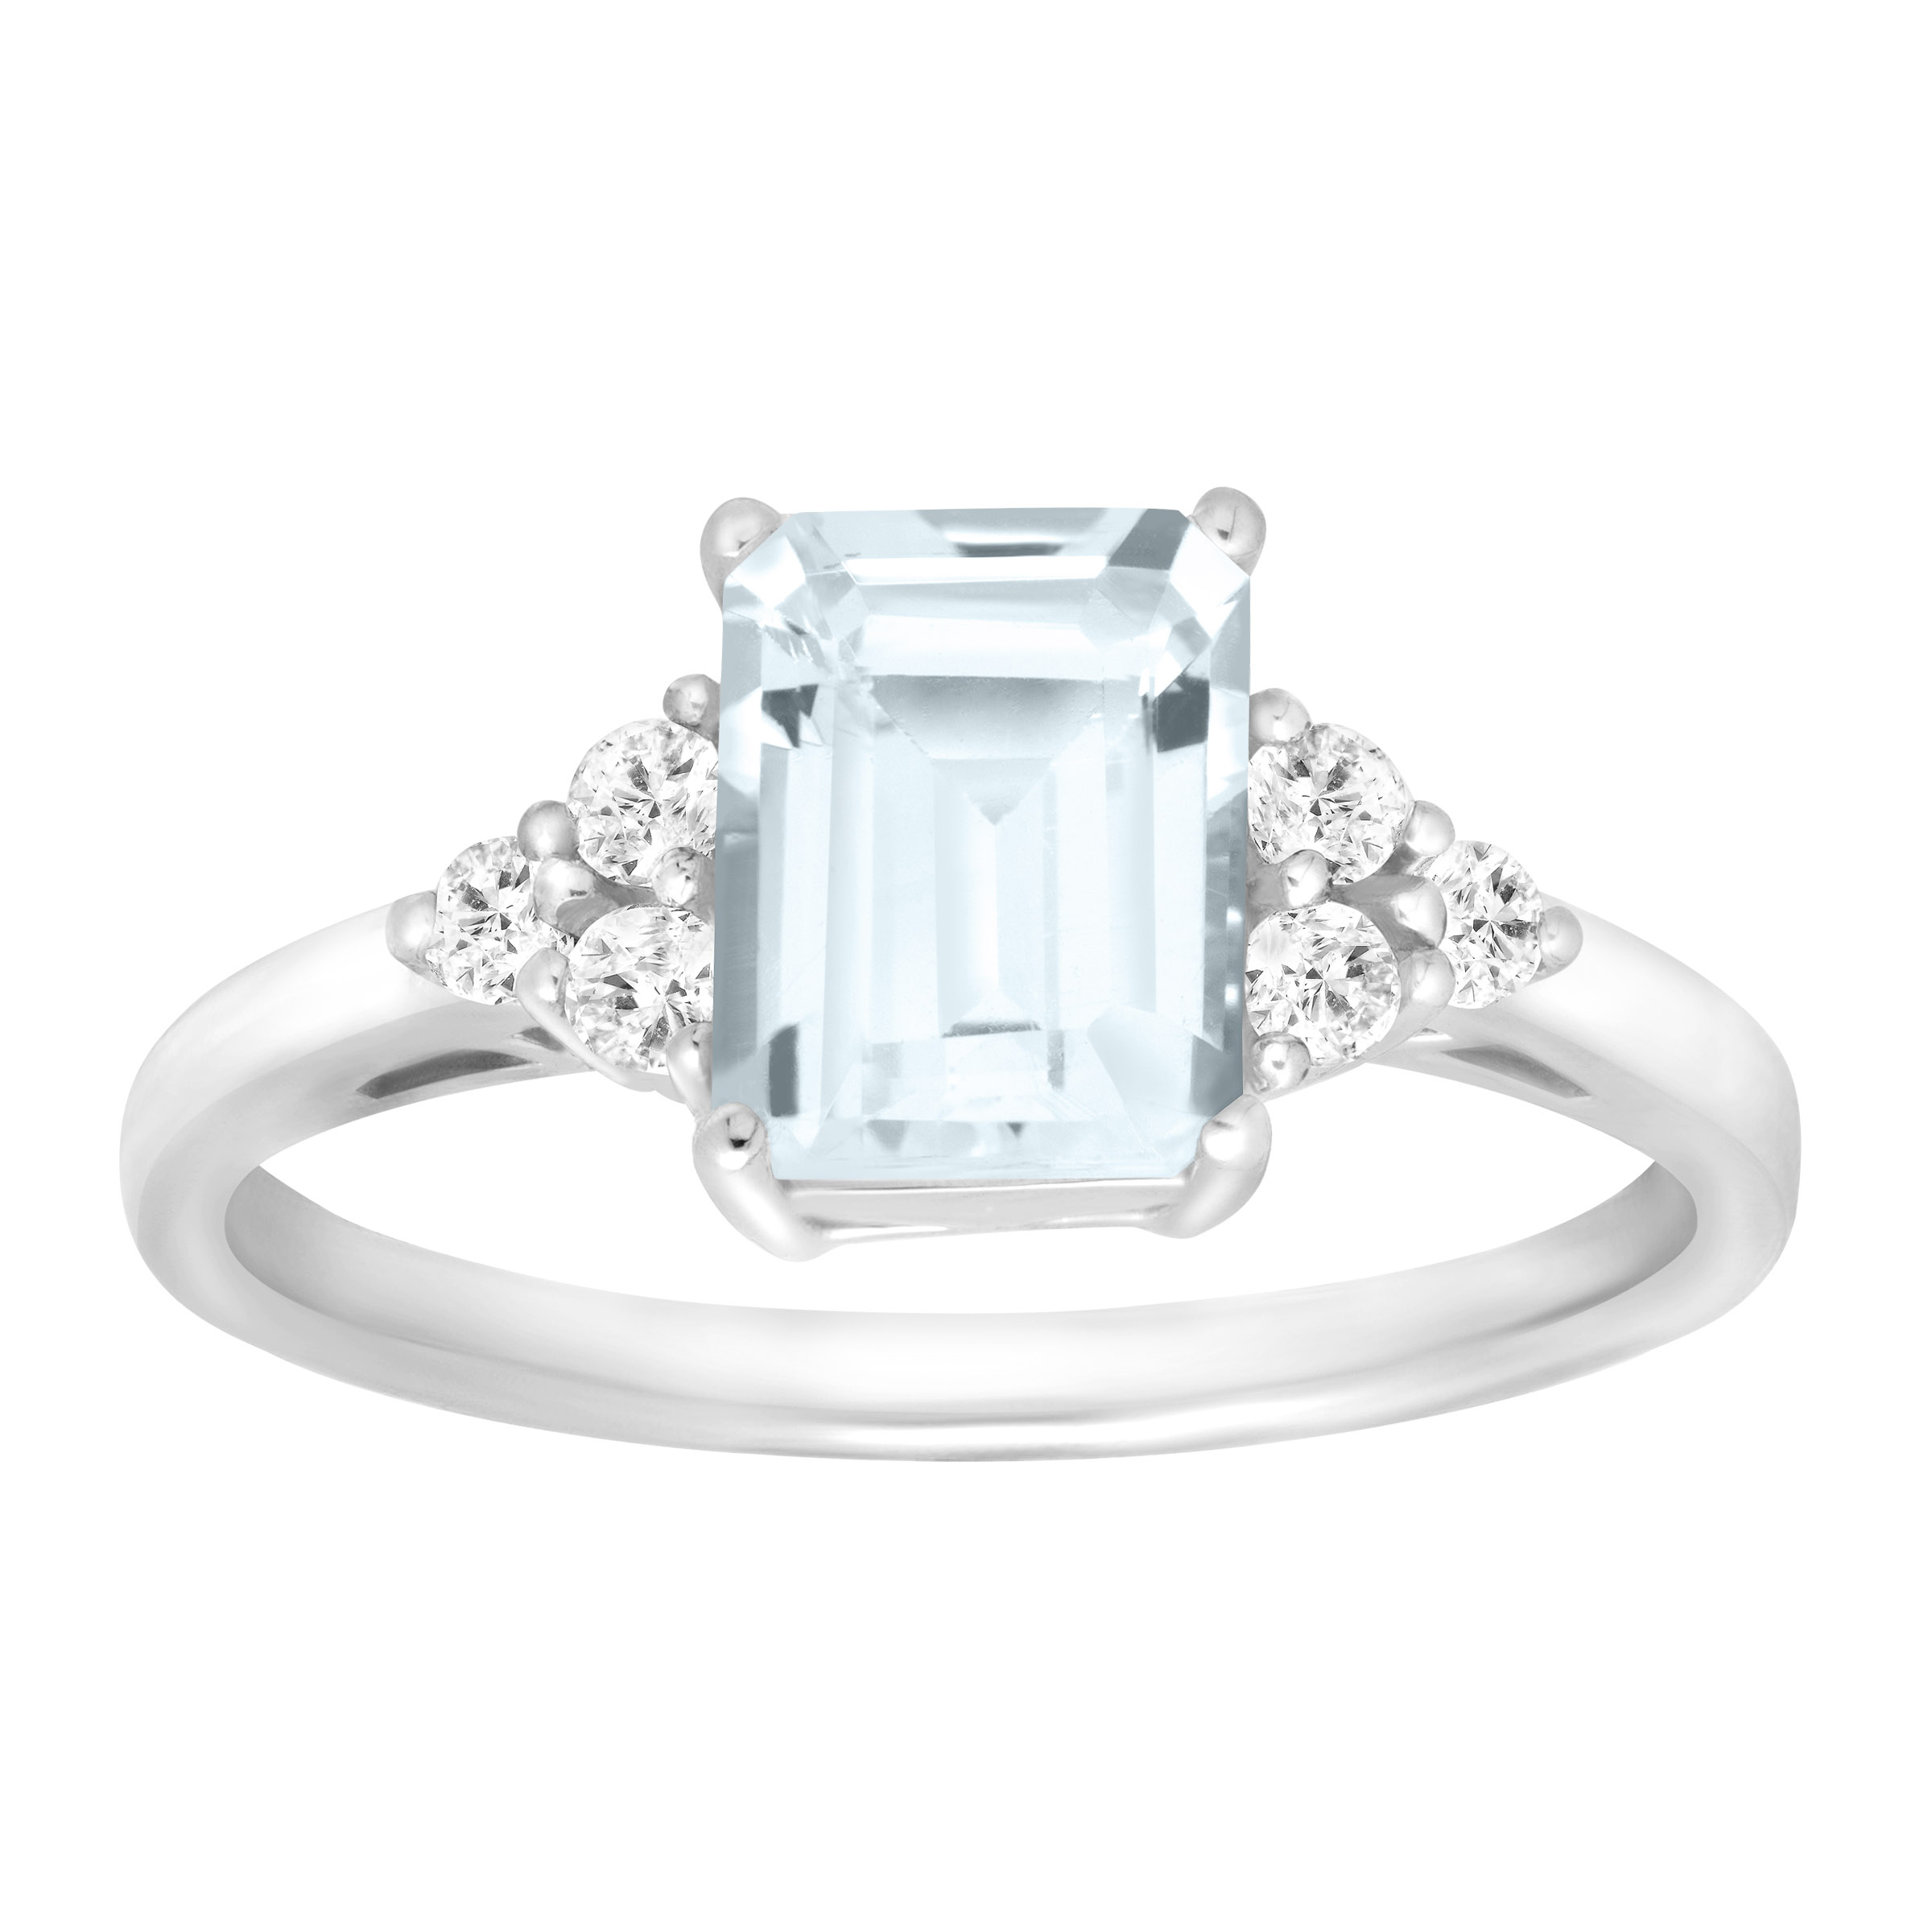 1 5 8 ct Natural Aquamarine & White Topaz Ring in Sterling Silver by Richline Group